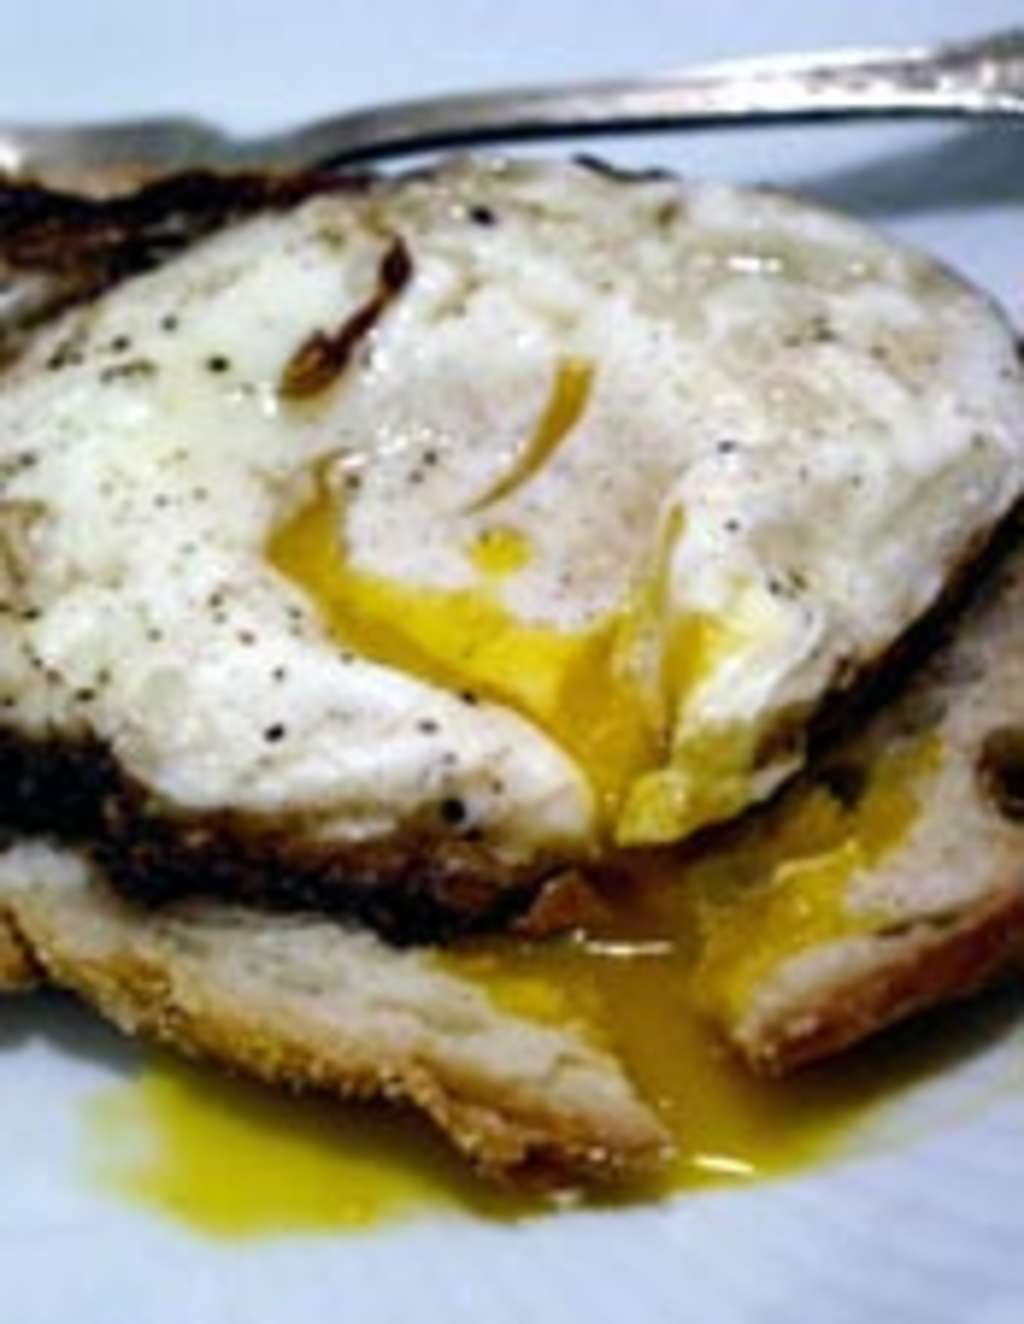 How To: Fry An Egg the Spanish Way